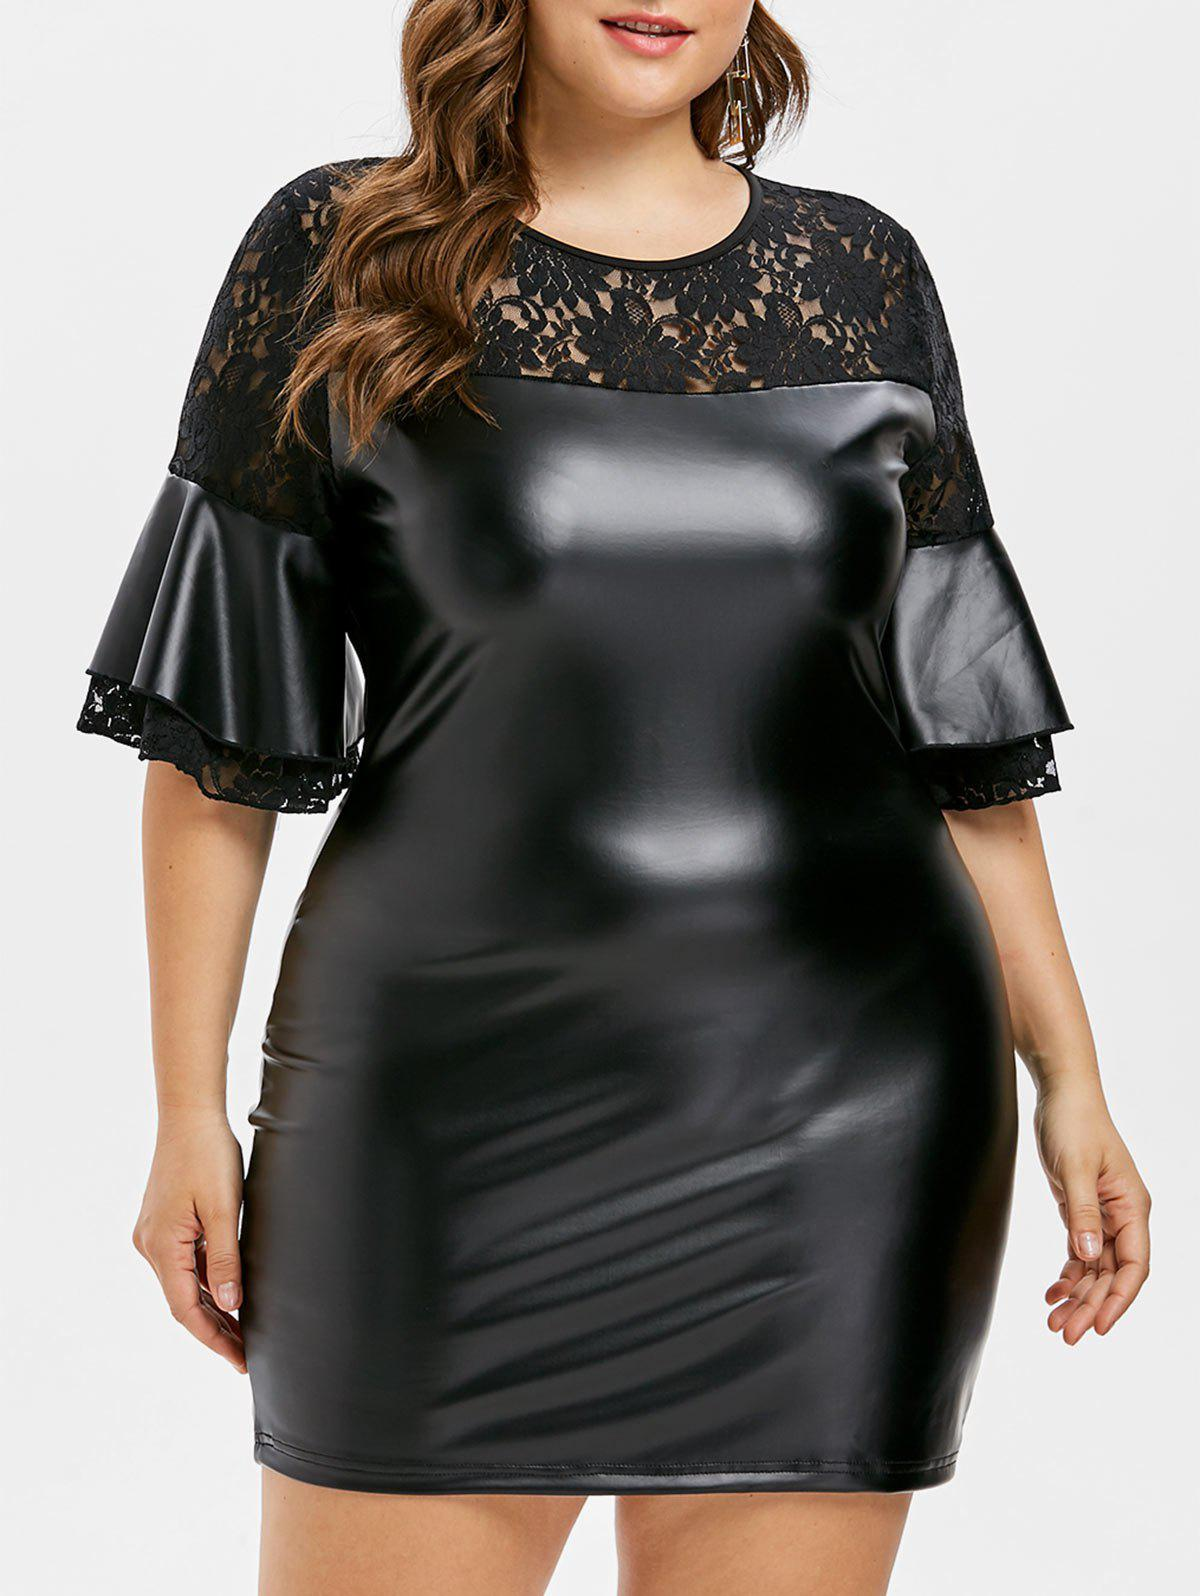 35% OFF] Plus Size Faux Leather Lace Insert Dress | Rosegal